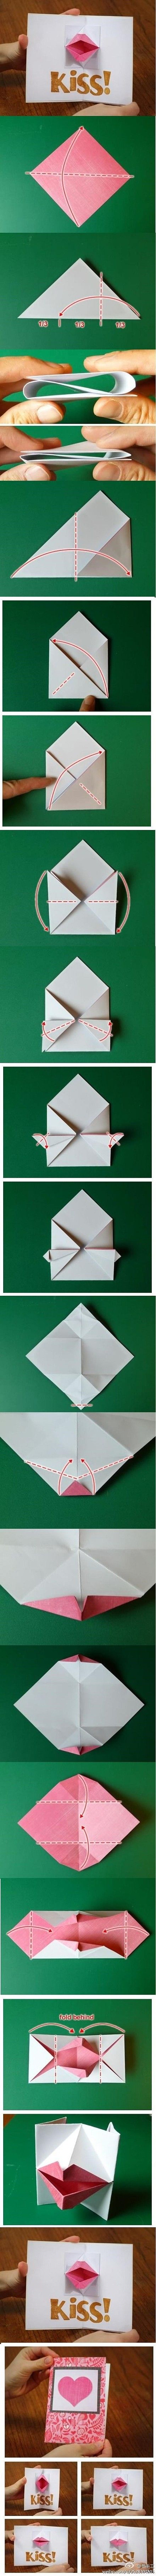 Pop up kiss card